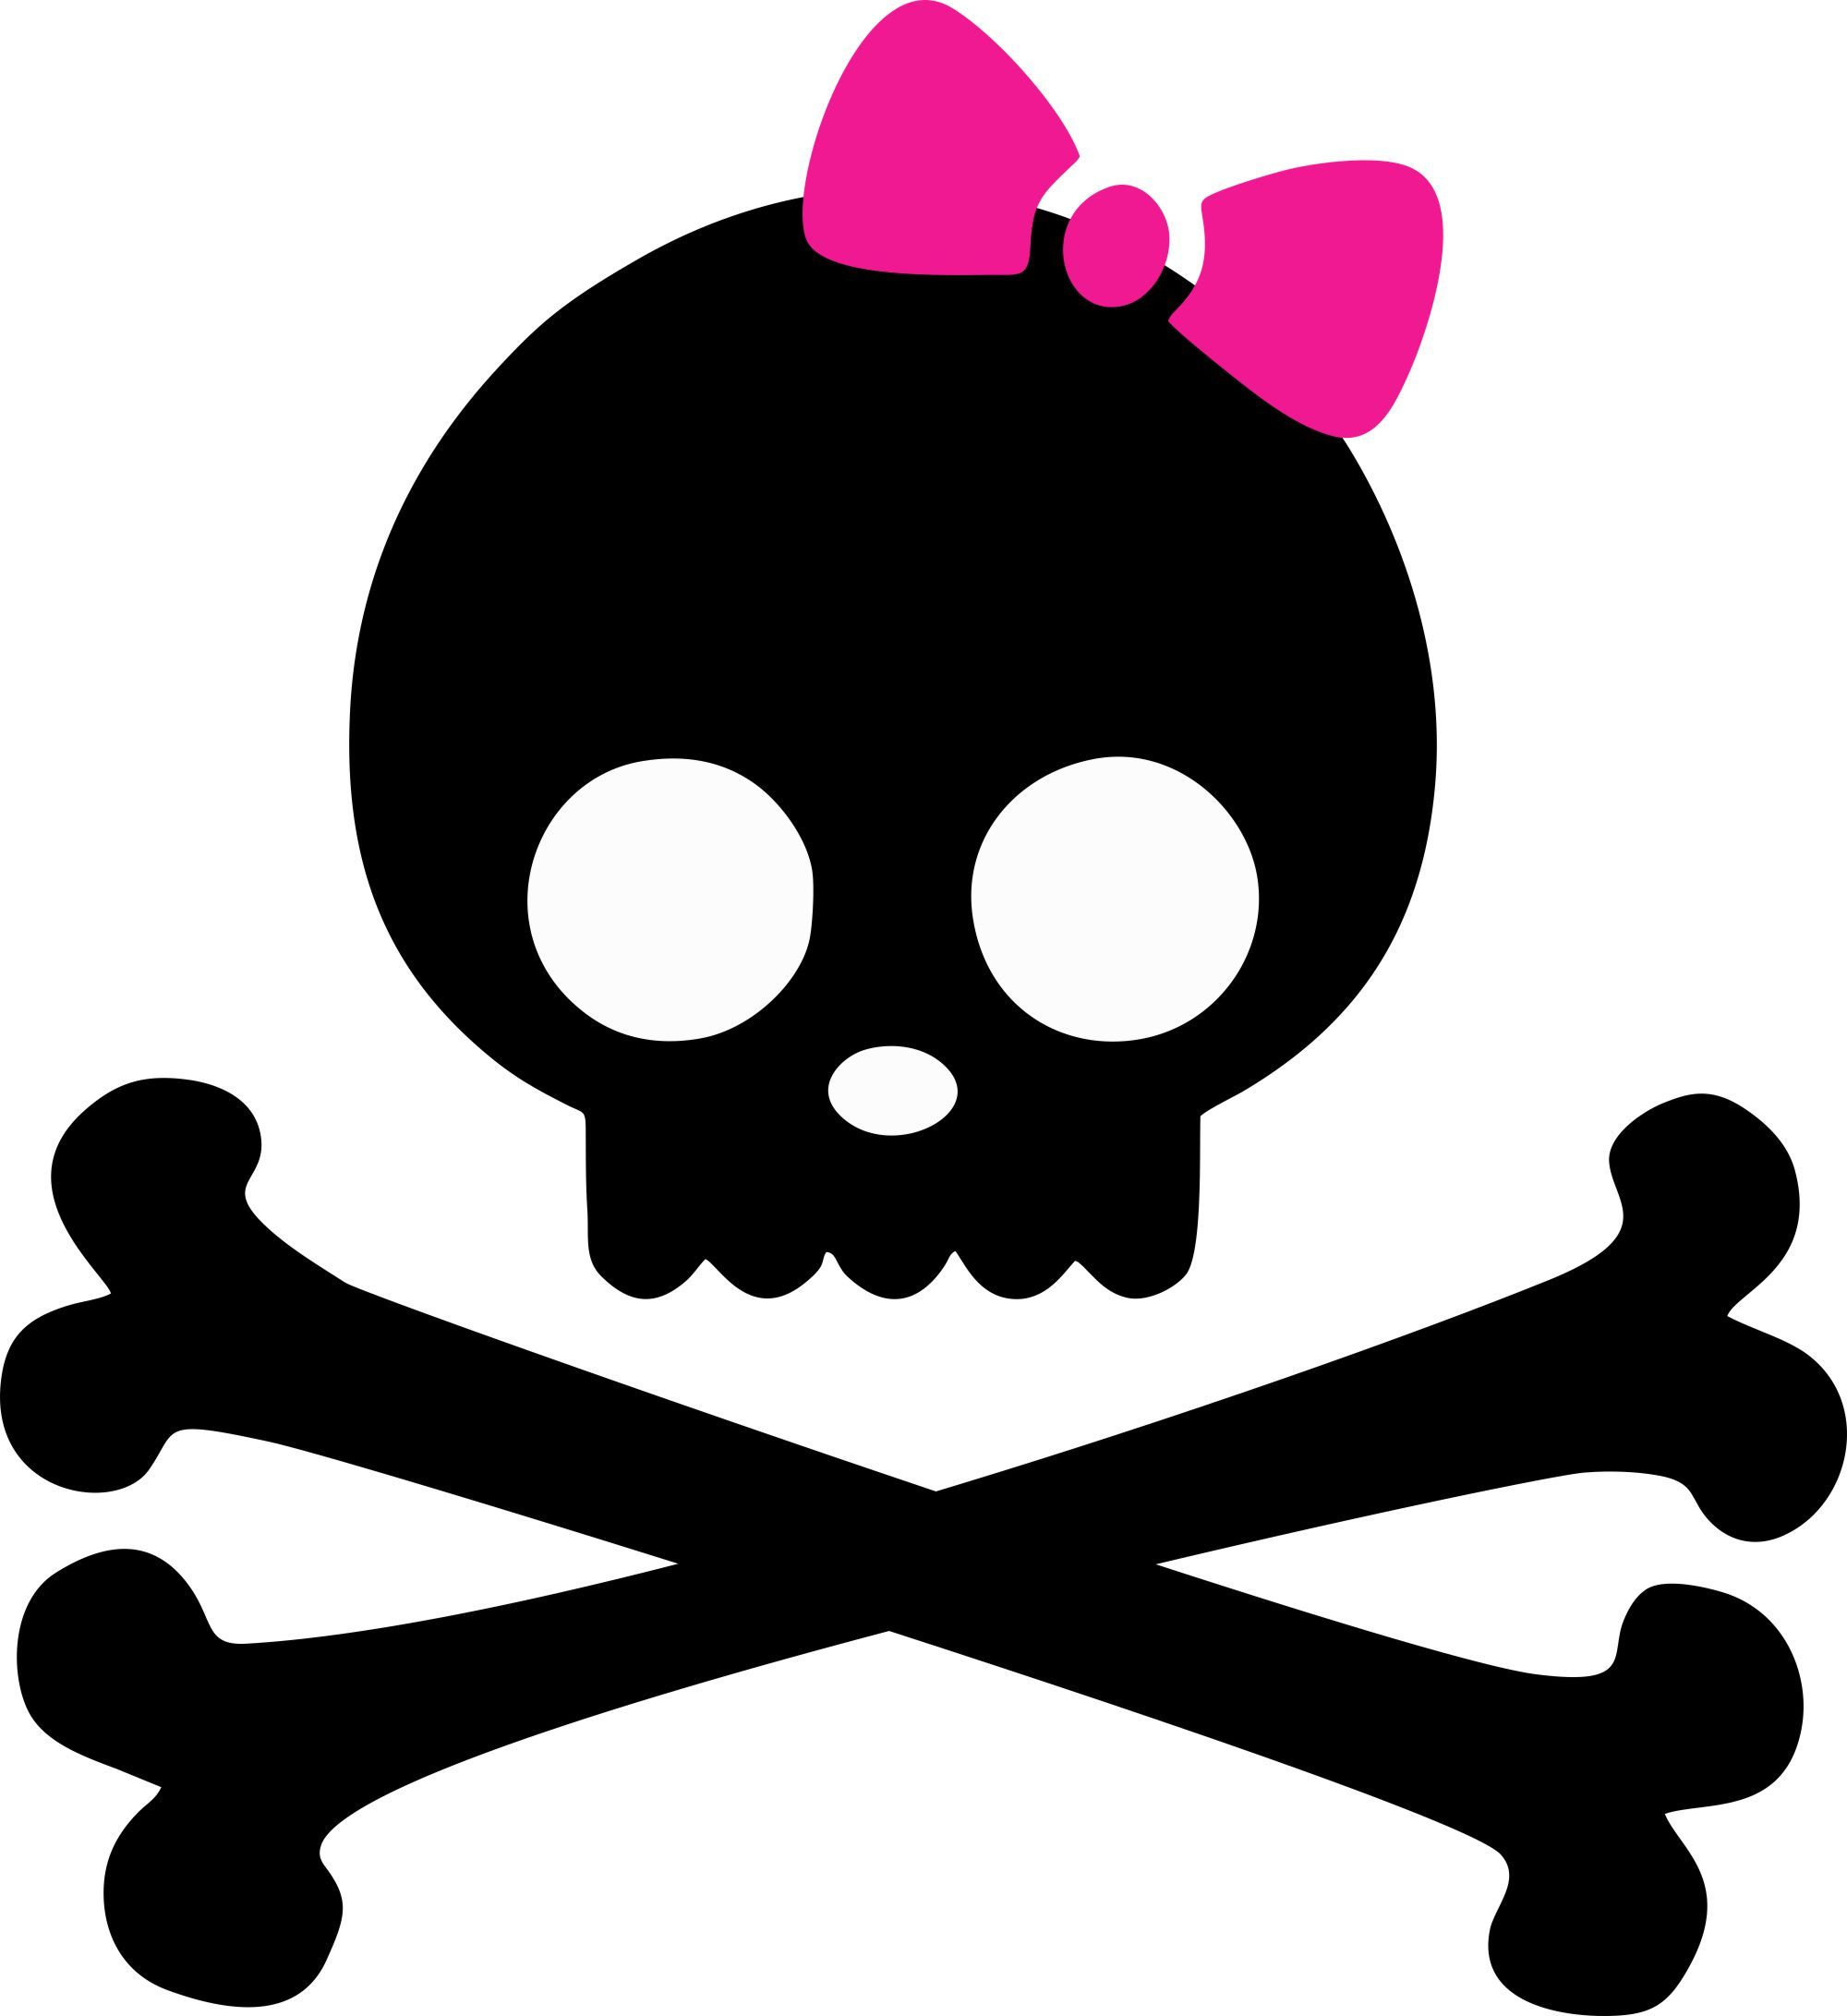 Girly skulls clipart banner transparent library Skulls and Bones Iron On with Pink Bow | Baby N Toddler - ClipArt ... banner transparent library